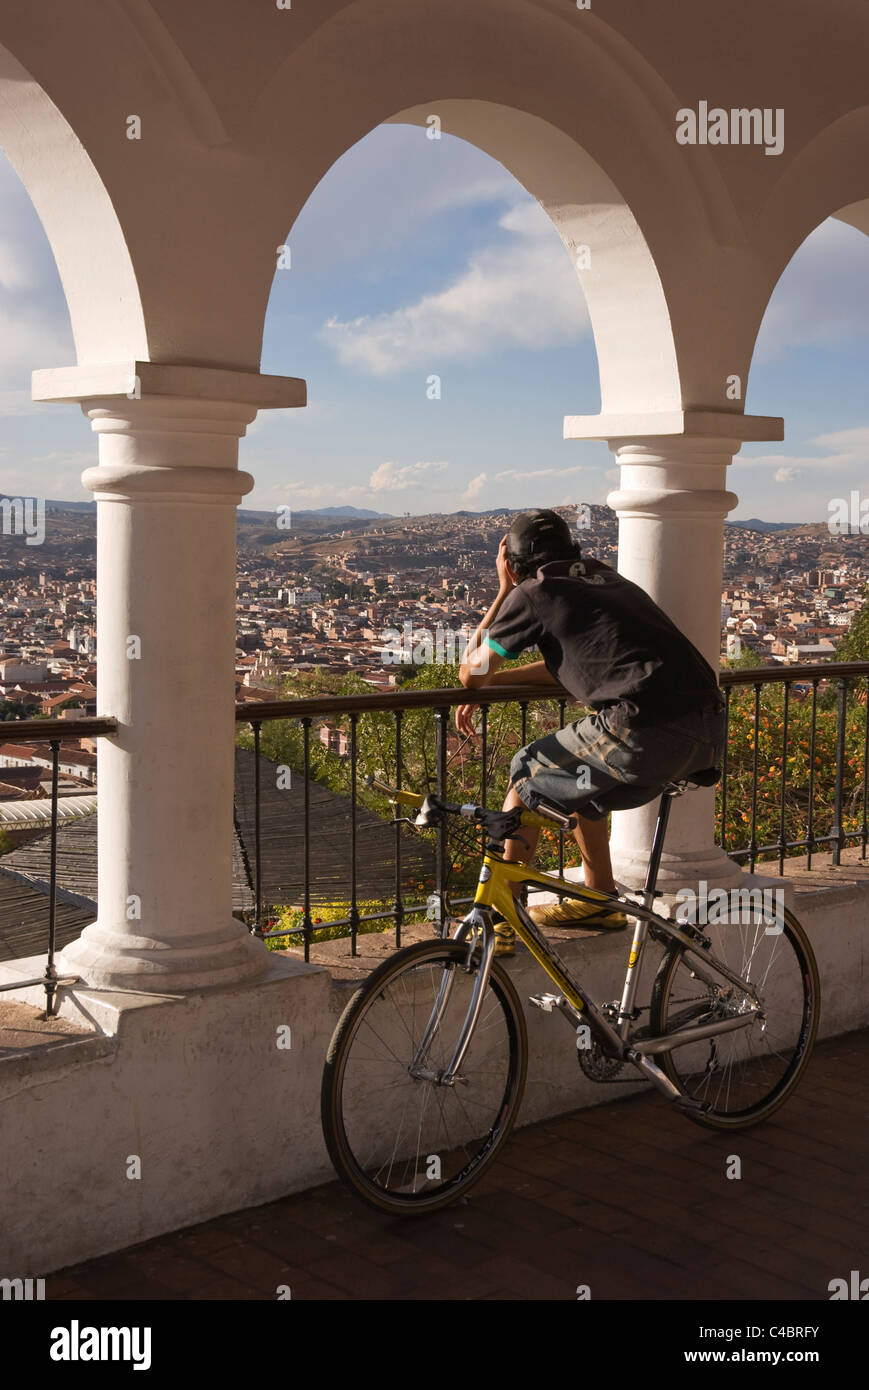 Sucre, Plaza Anzures, colonnade with bicyclist enjoying view - Stock Image